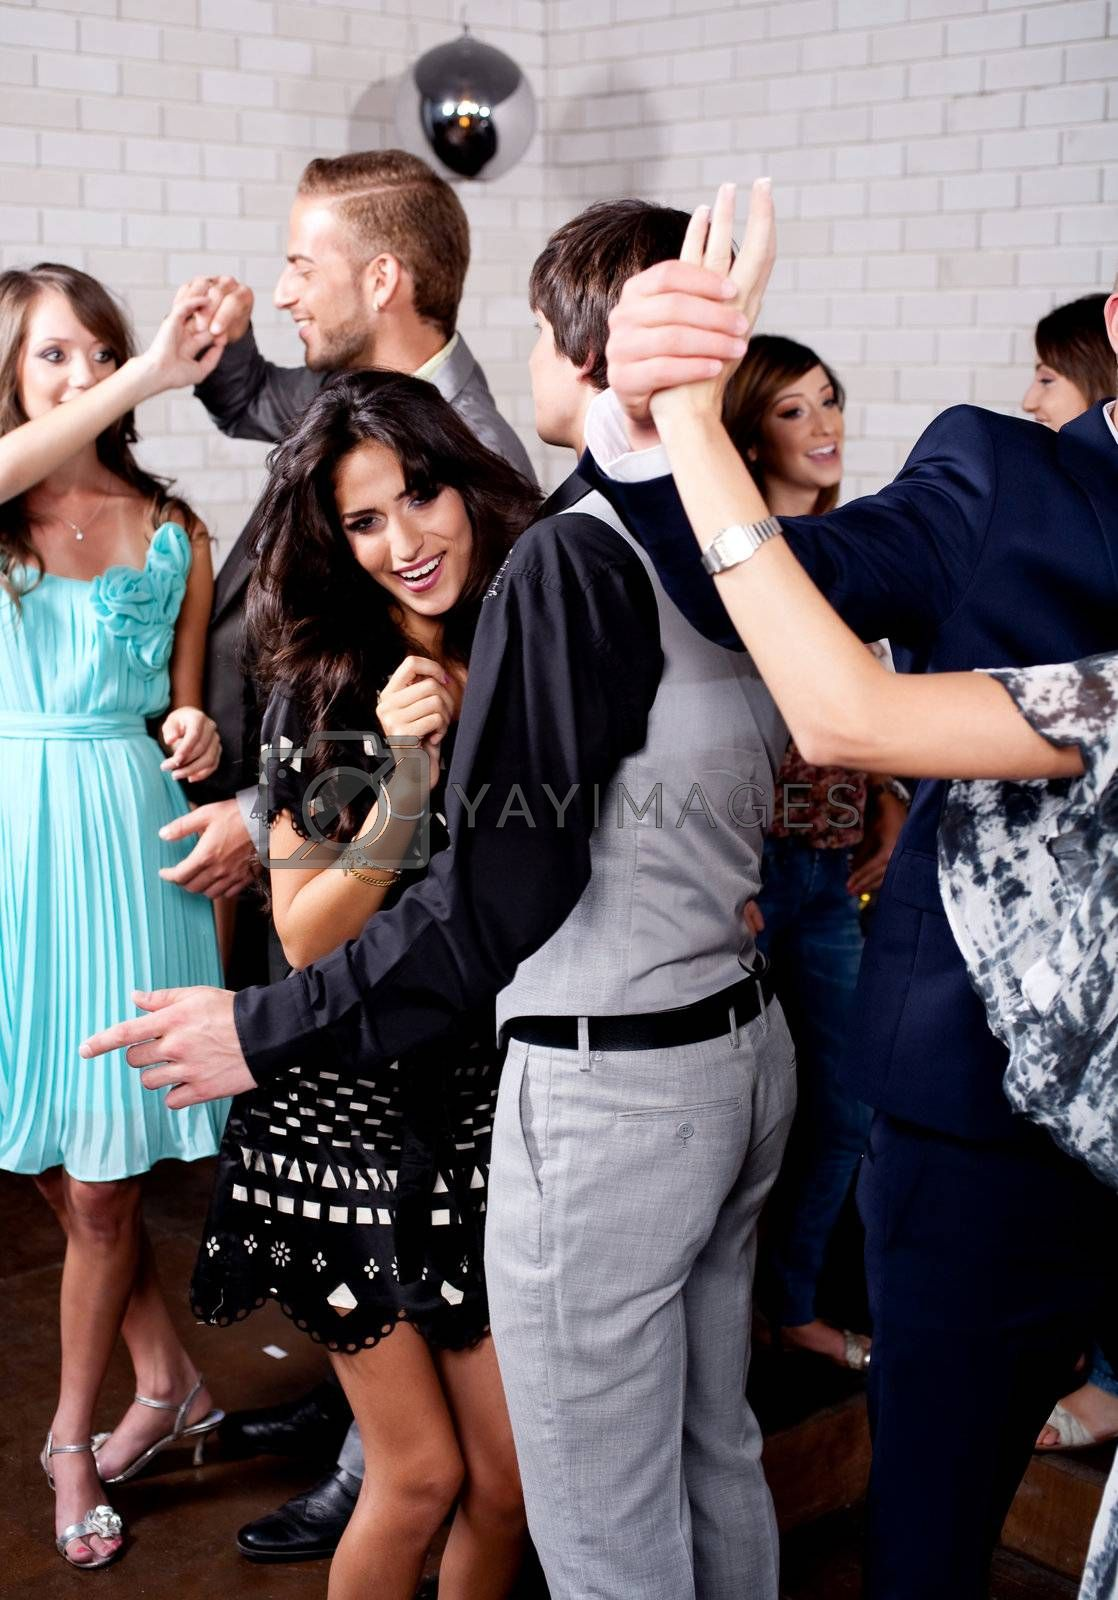 Group of many people dance at night club